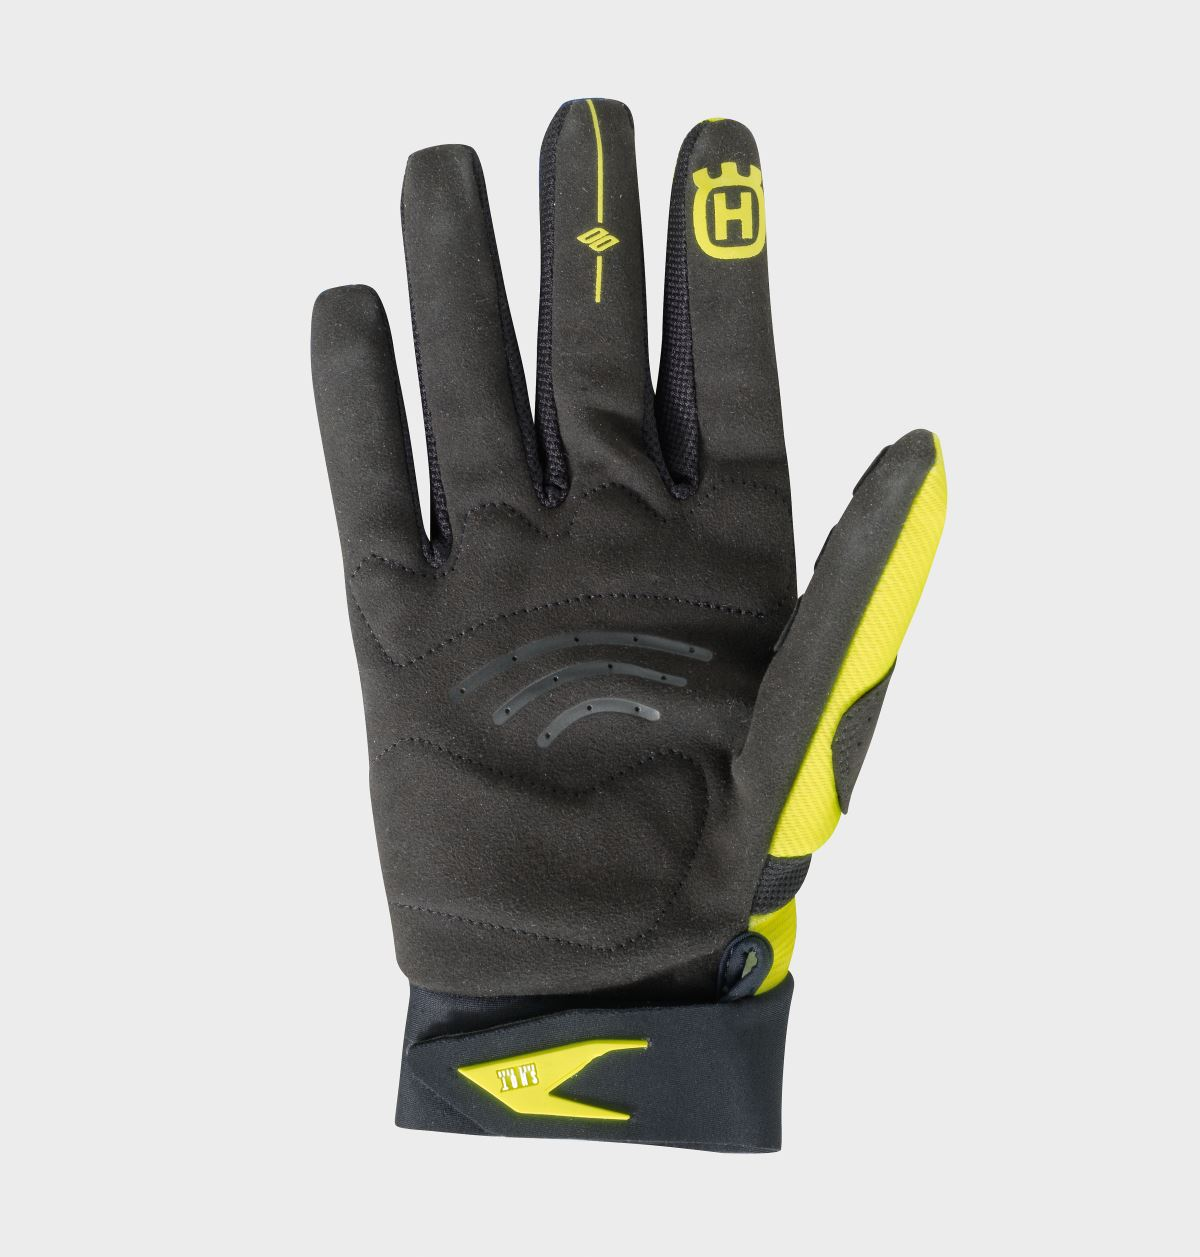 191009 HUSQVARNA MOTORCYCLES REPLICA FLASH COLLECTION 2019 BY SHOT - GLOVES [2]